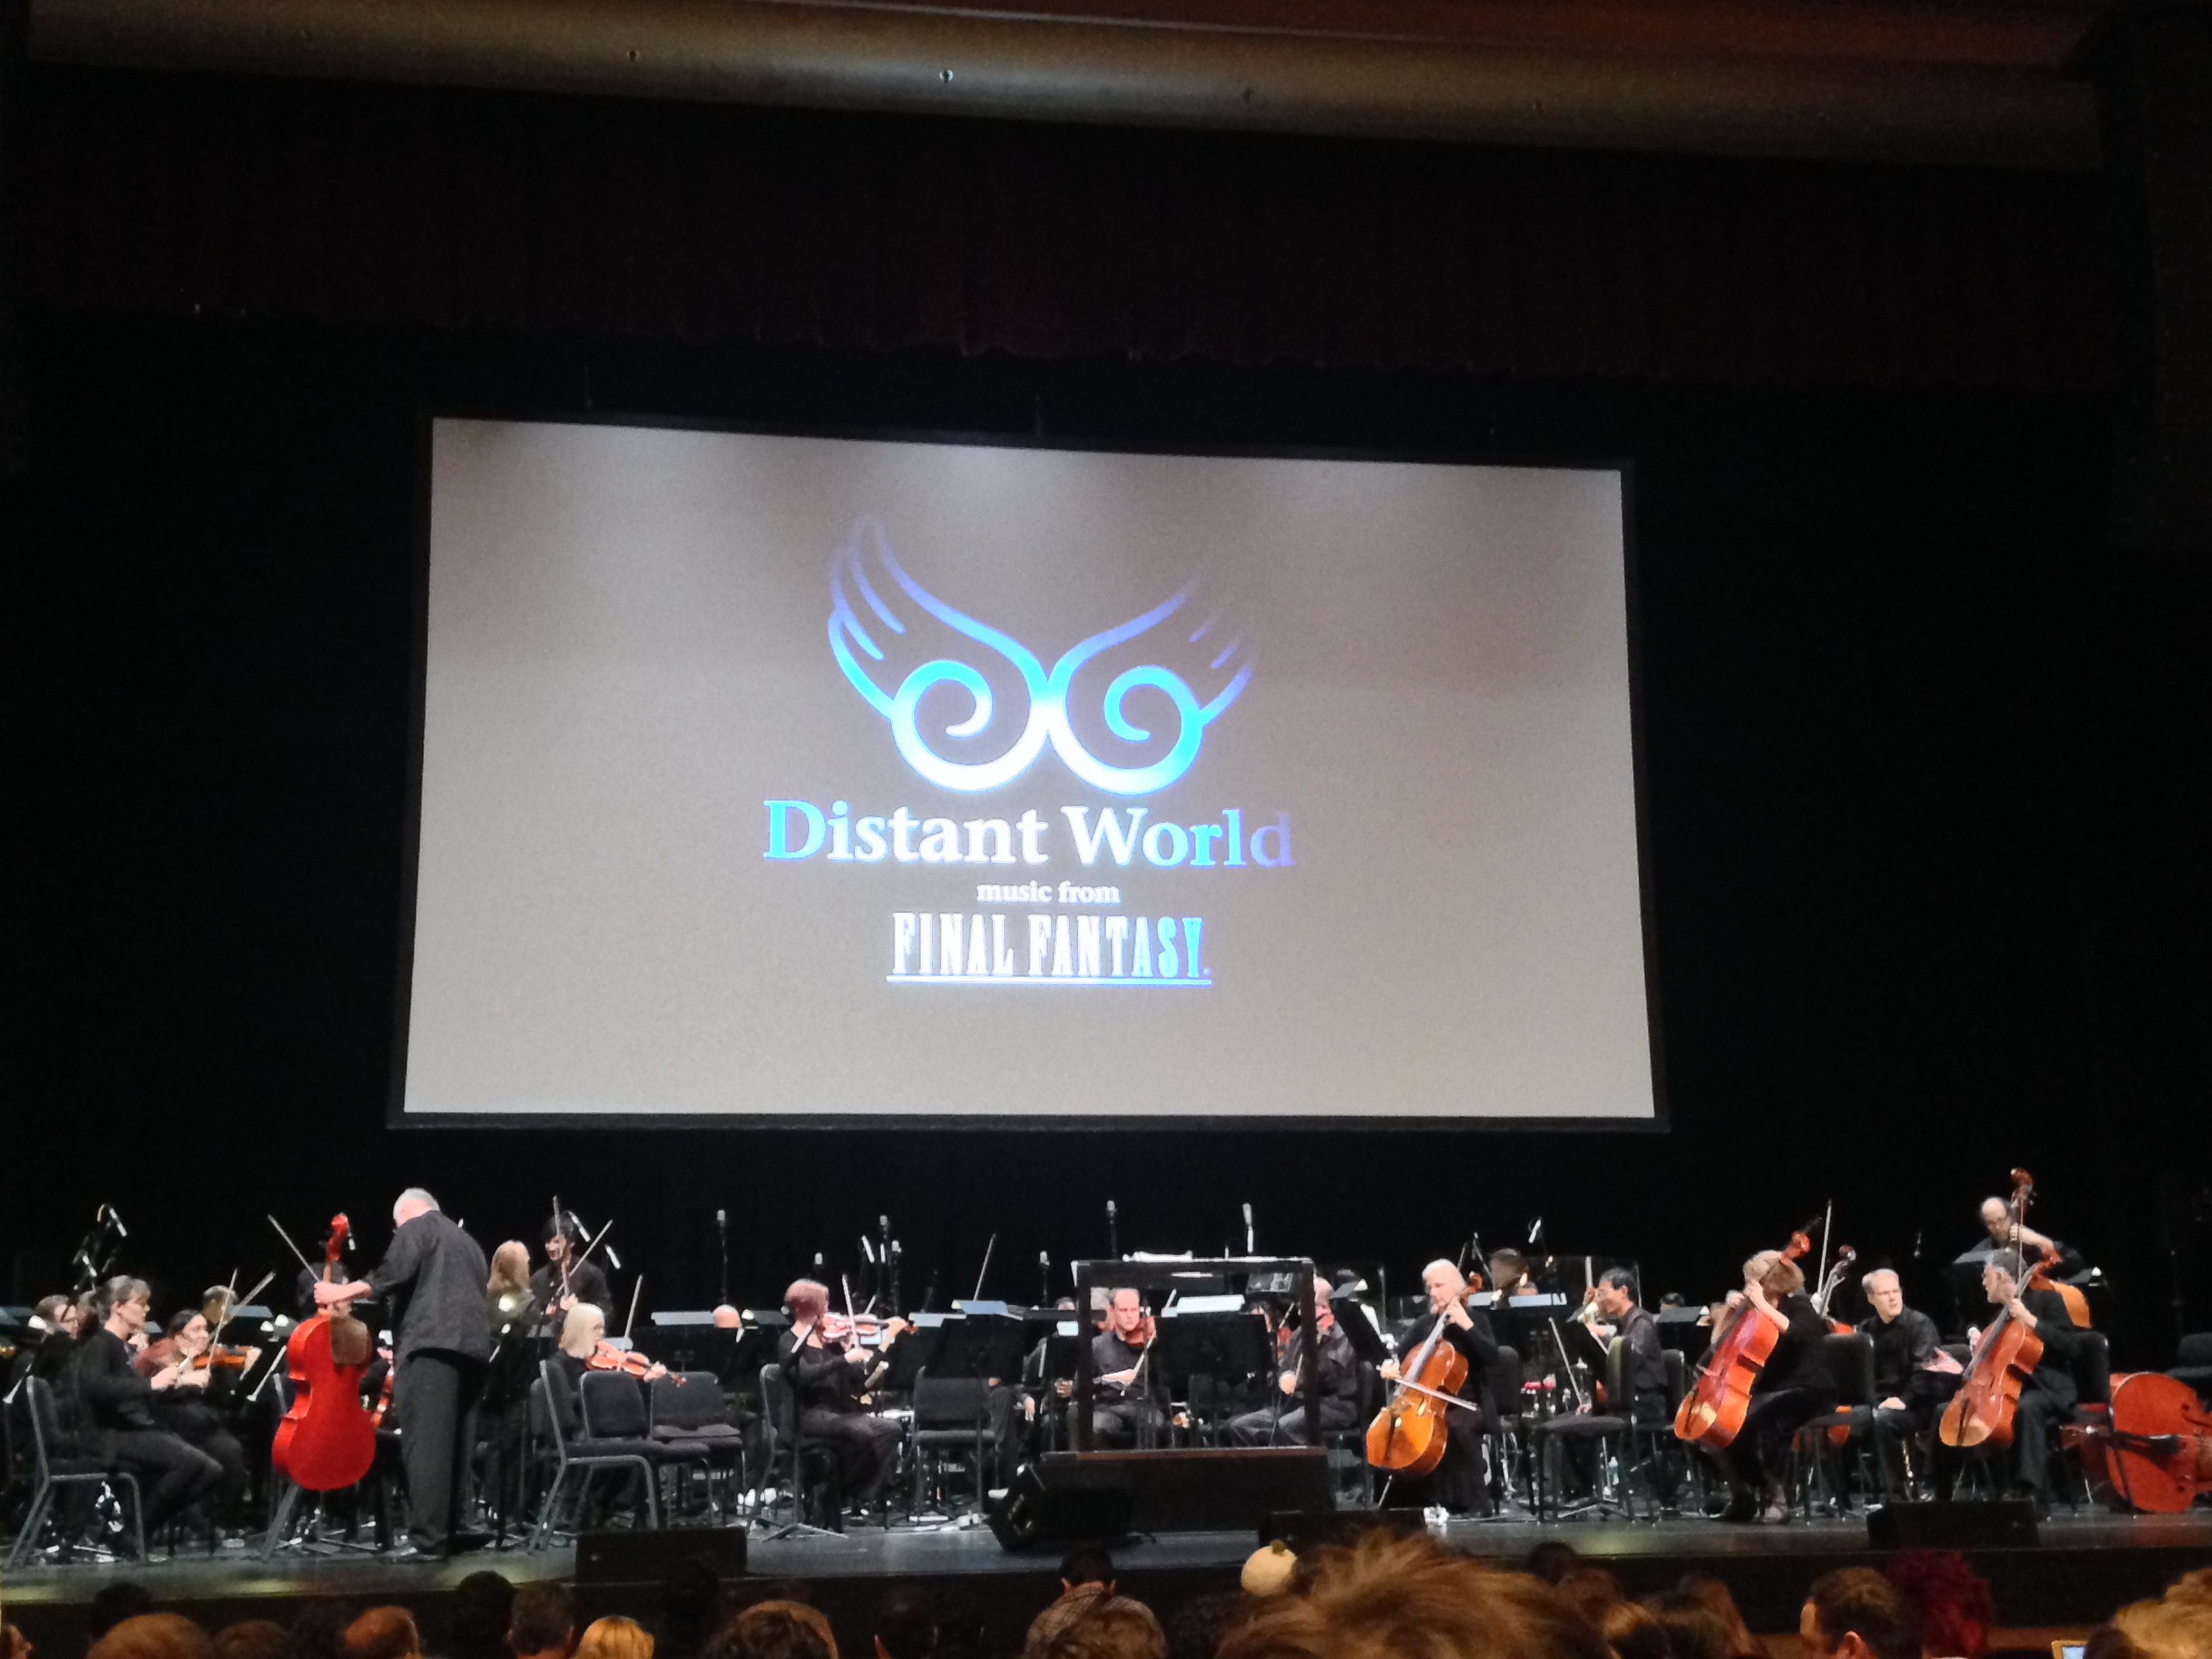 The Final Fantasy Distant Worlds stage